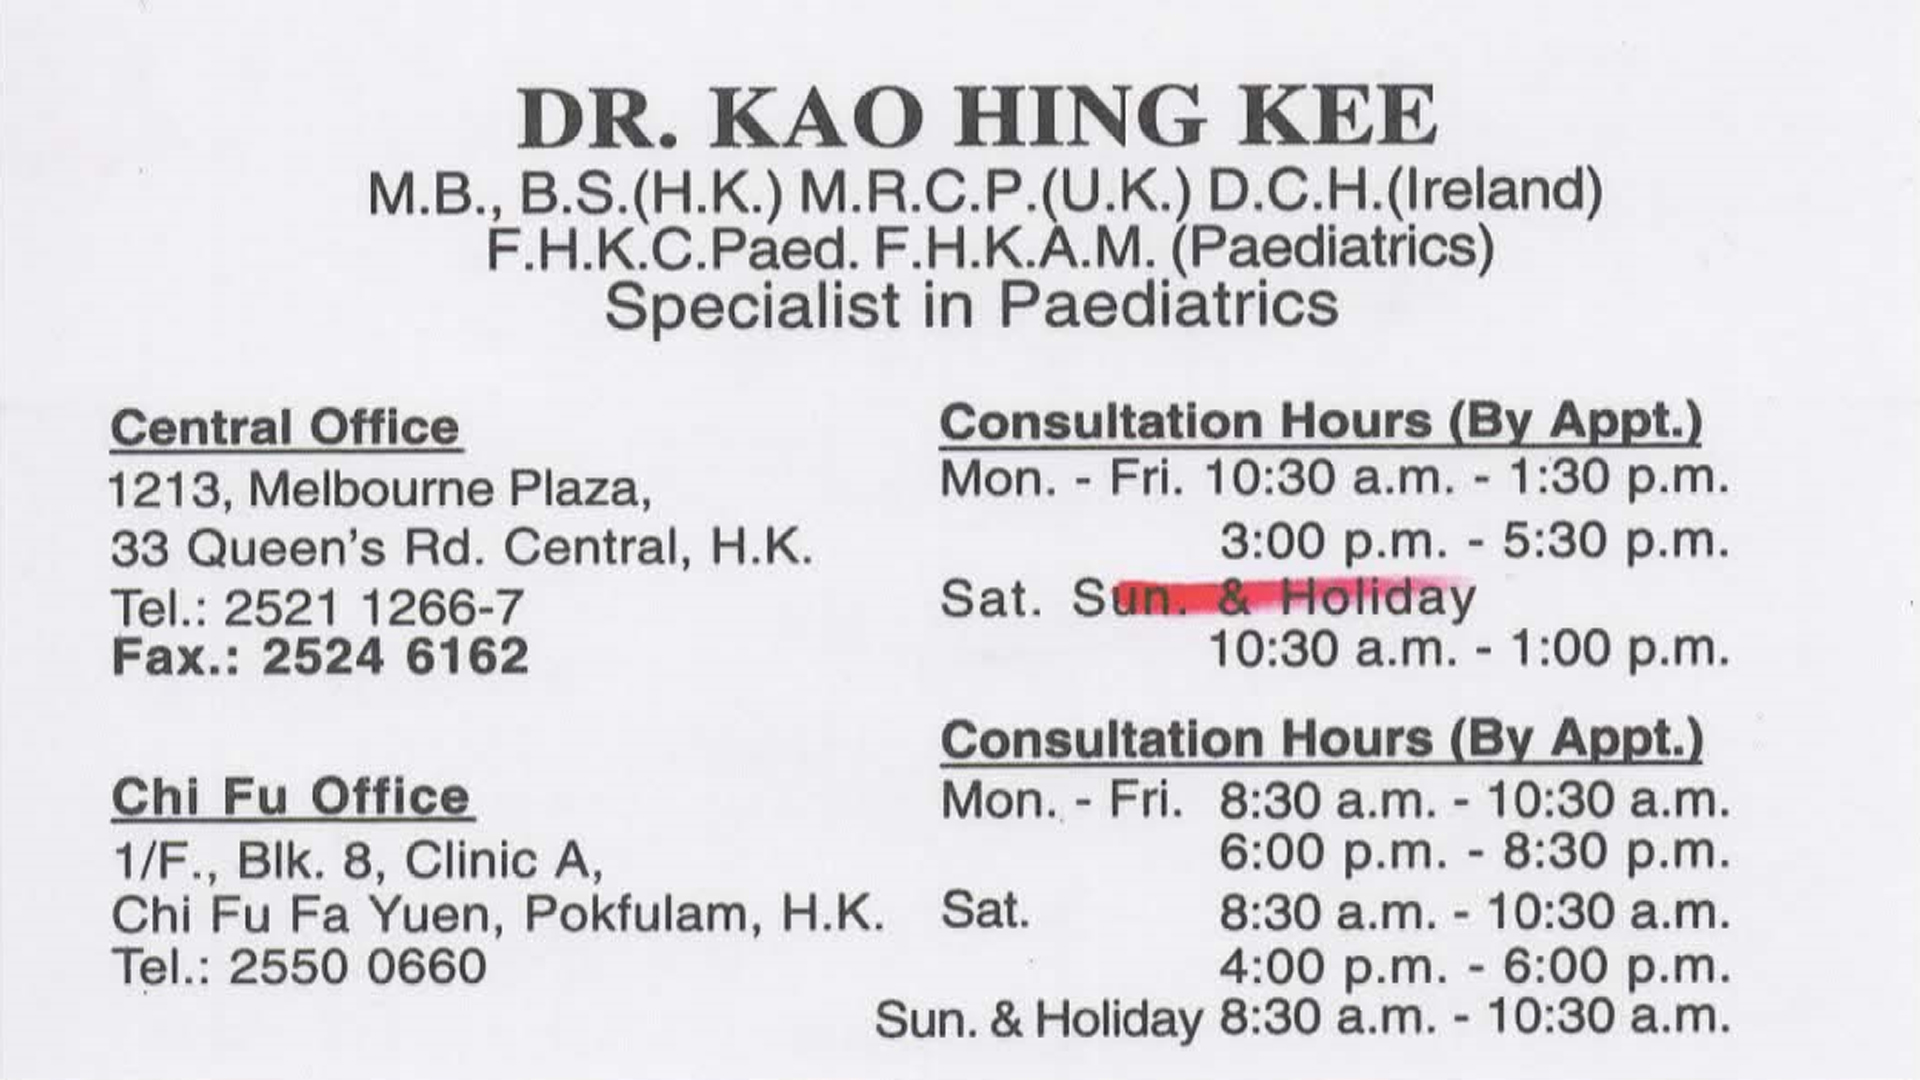 Dr KAO HING KEE, FREDERICK Name Card